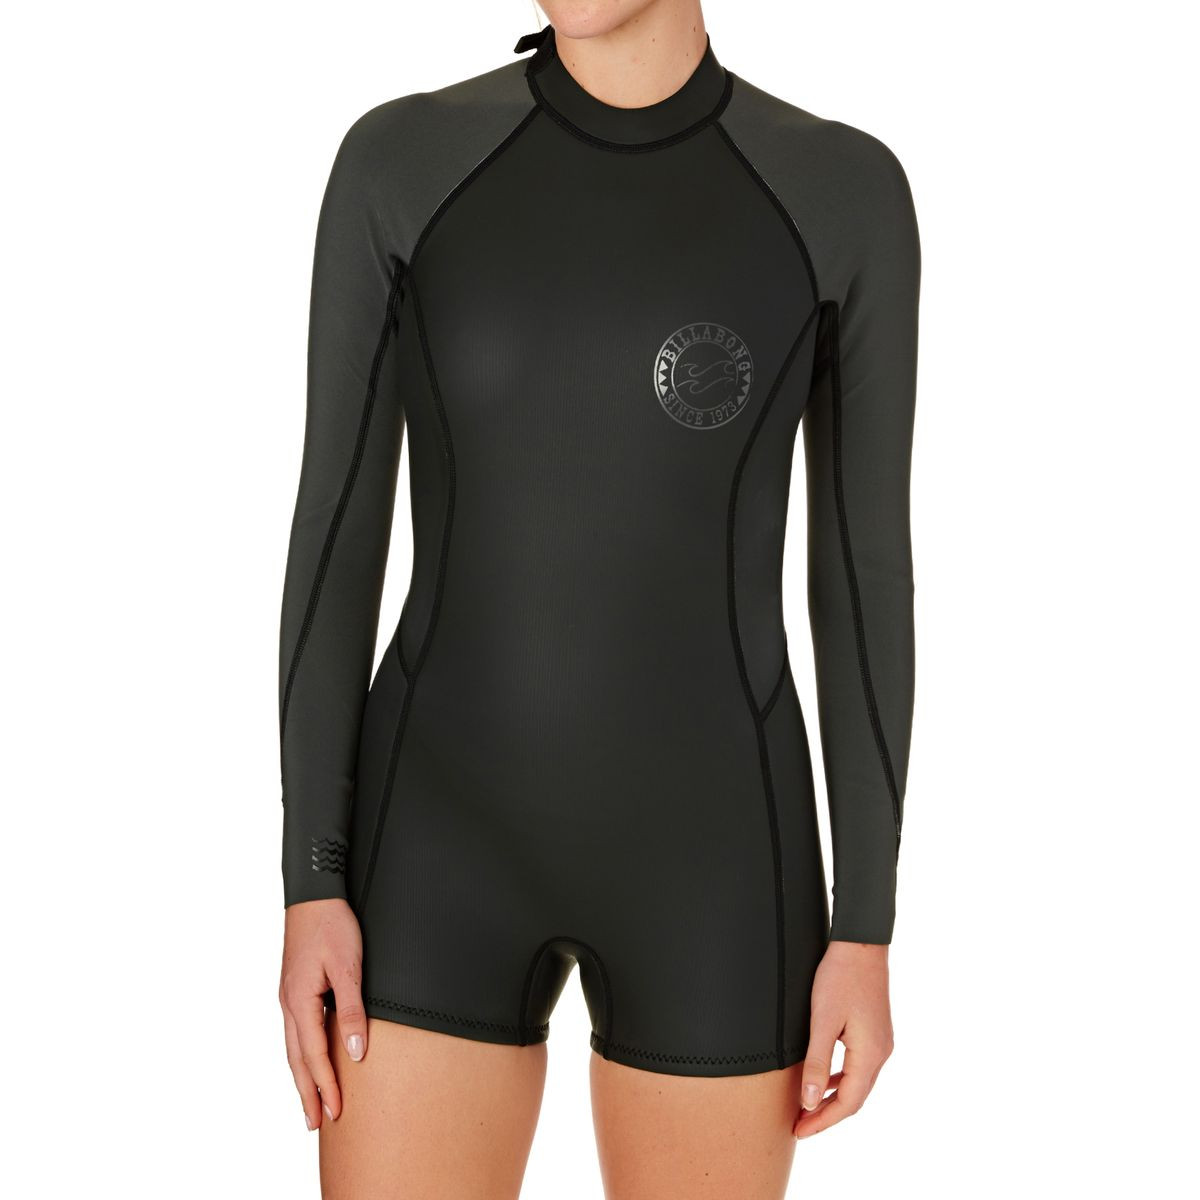 a3e6029180 Billabong Womens Surf Capsule Spring Fever 2mm 2017 Back Zip Long Sleeve  Shorty Wetsuit - Black